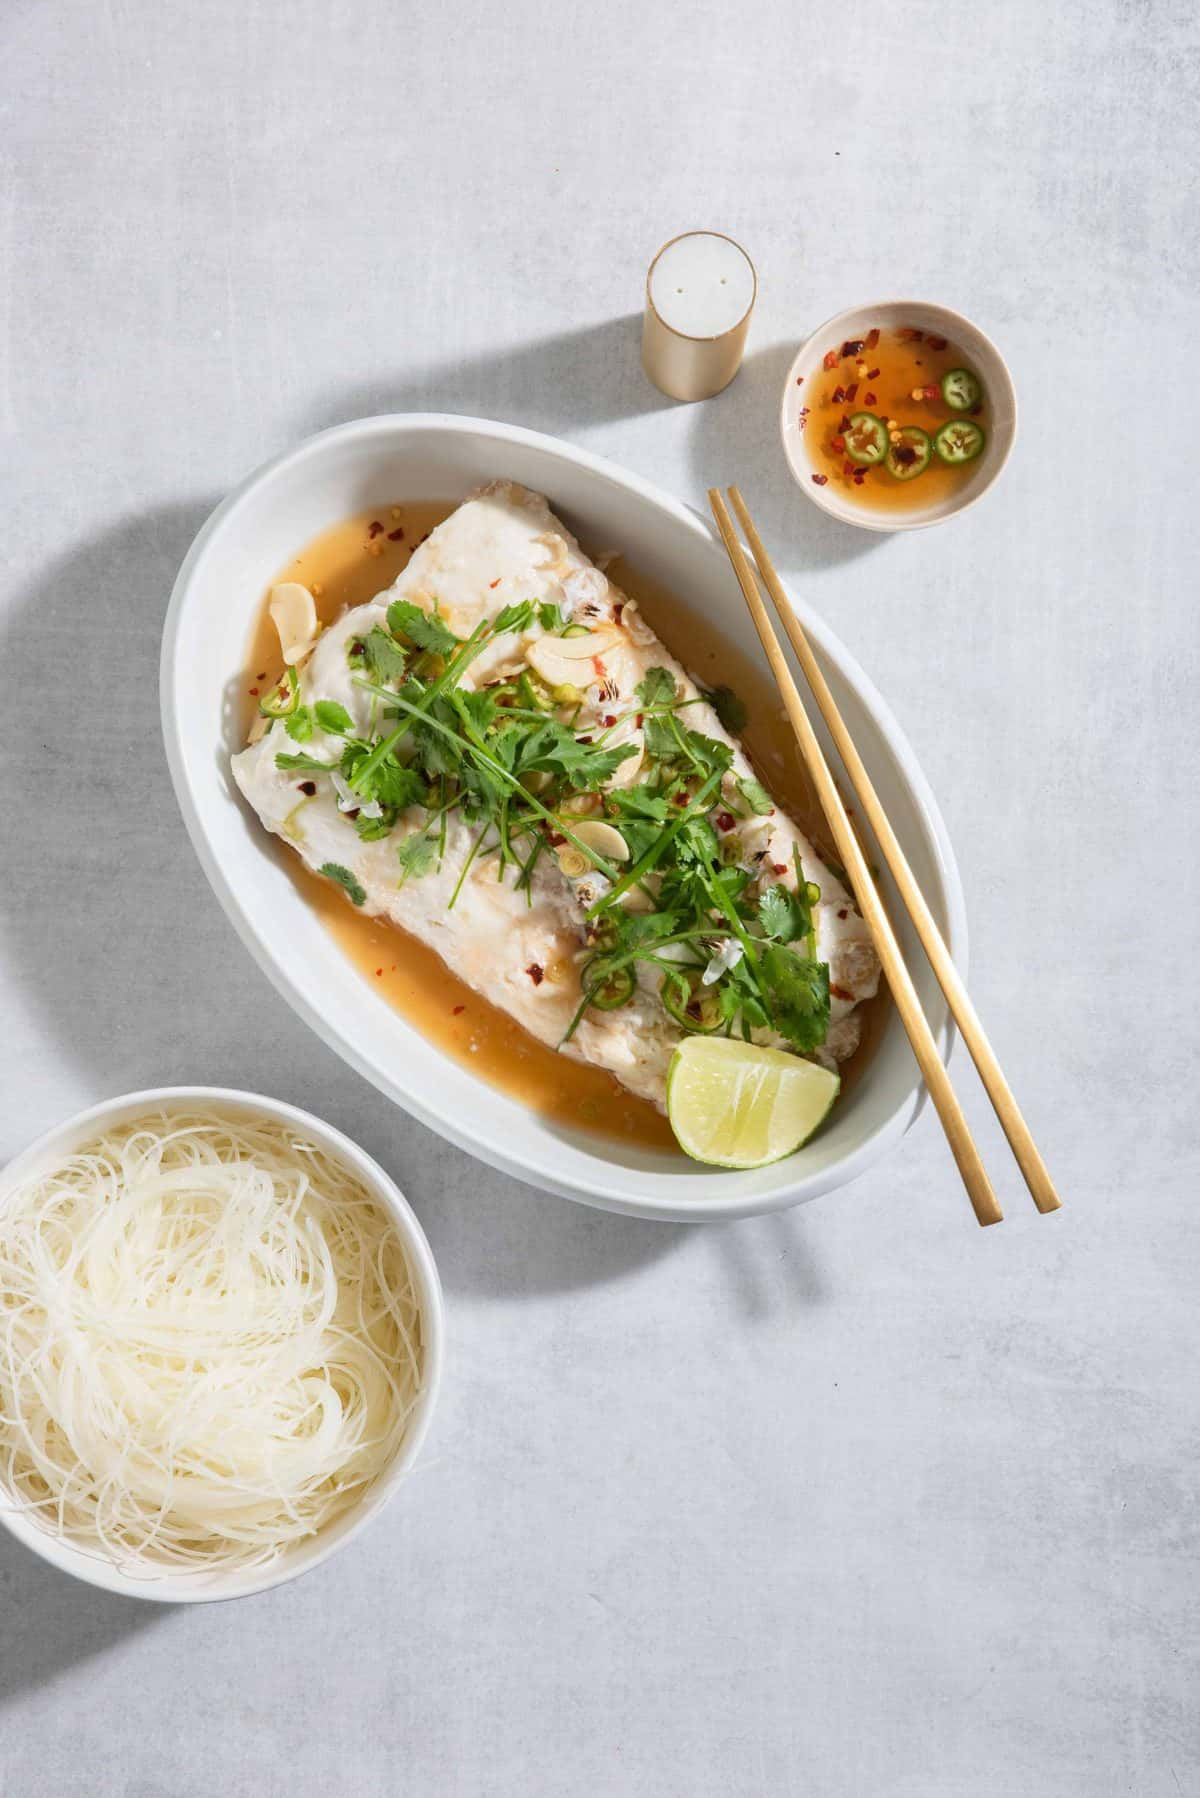 Steamed Halibu in a white serving dish with garlic-lime sauce and rice noodles